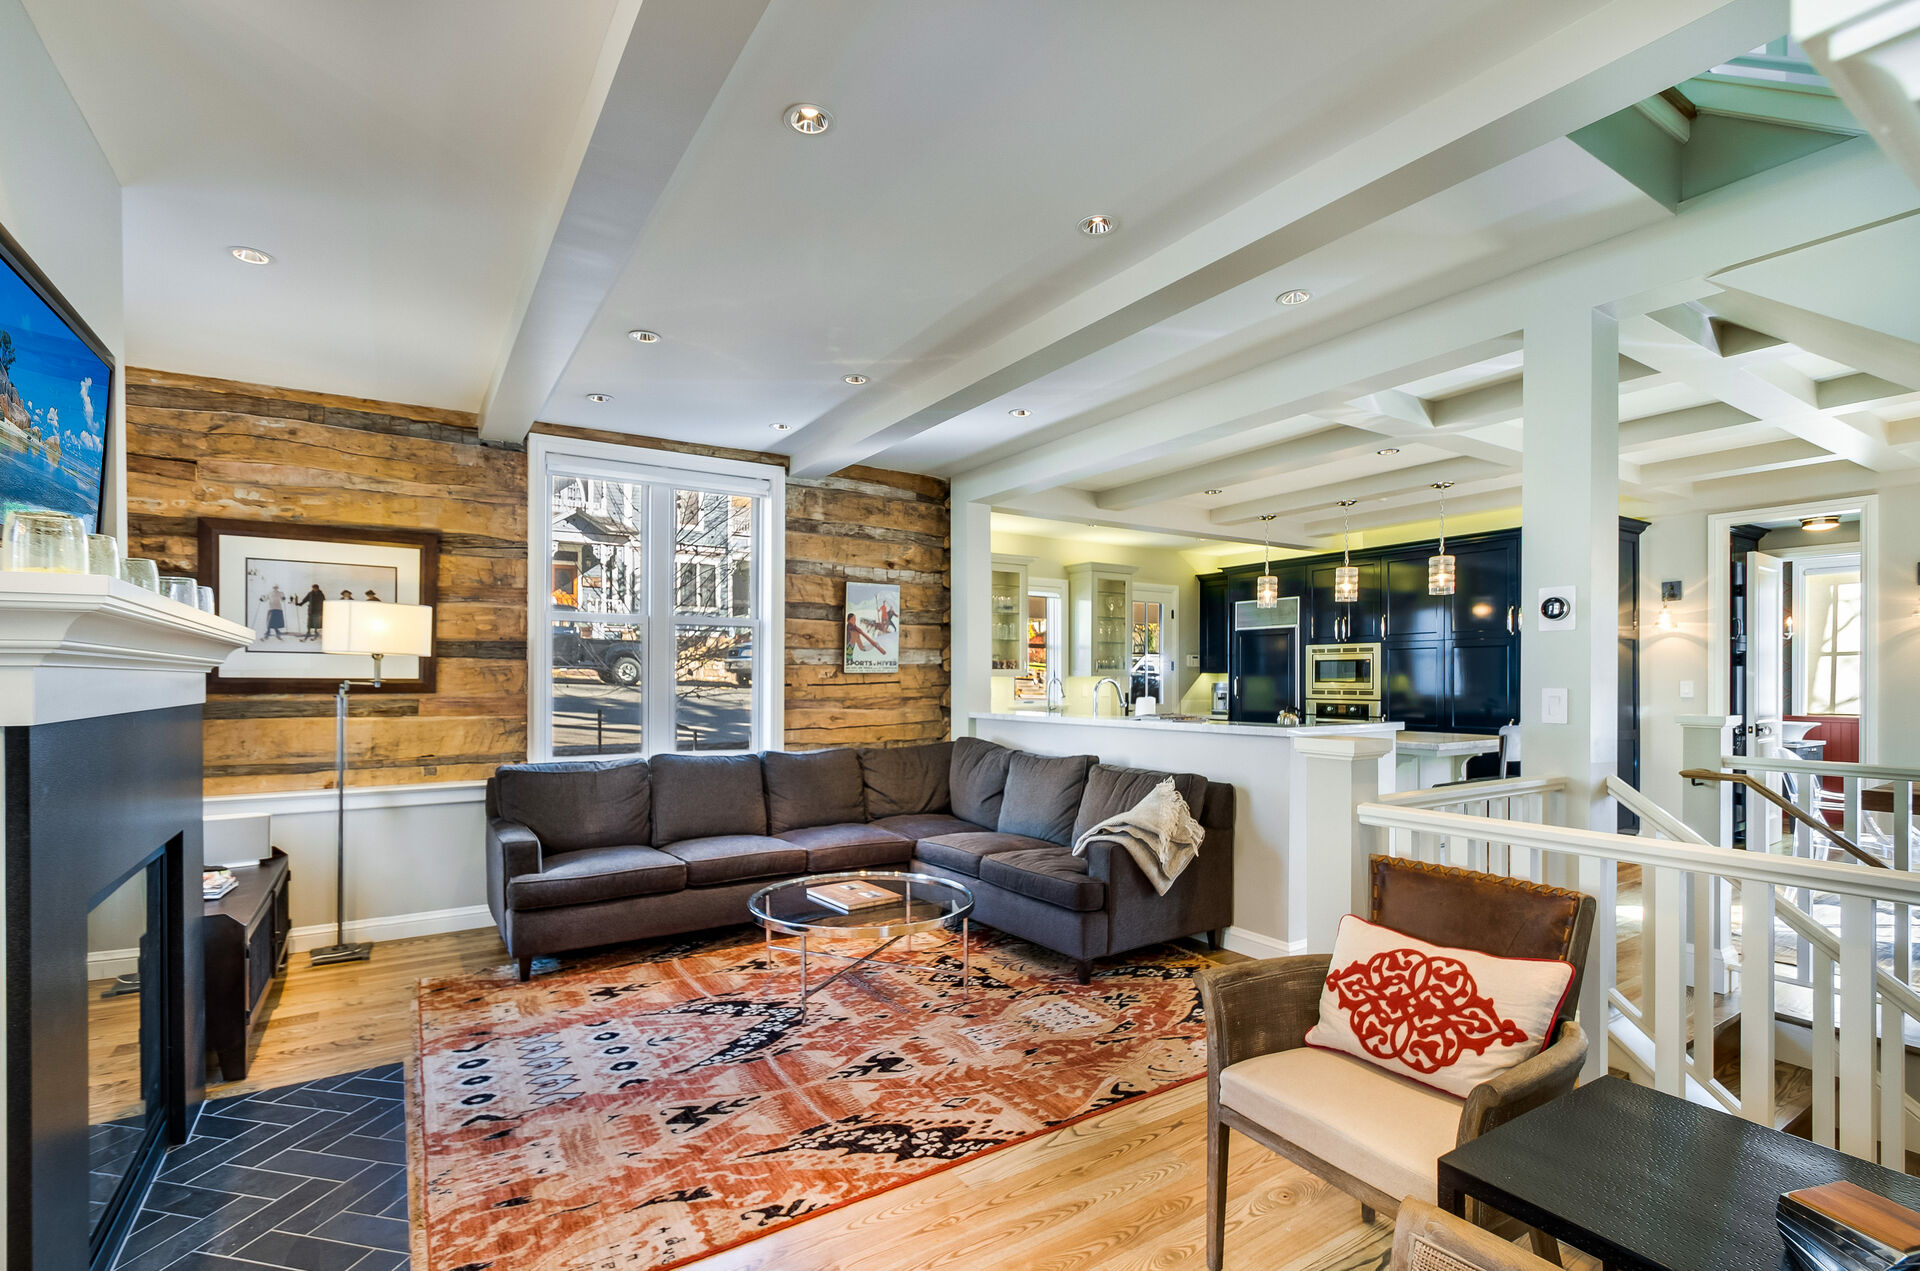 Living Area with Wood Walls and Luxury Furnishings